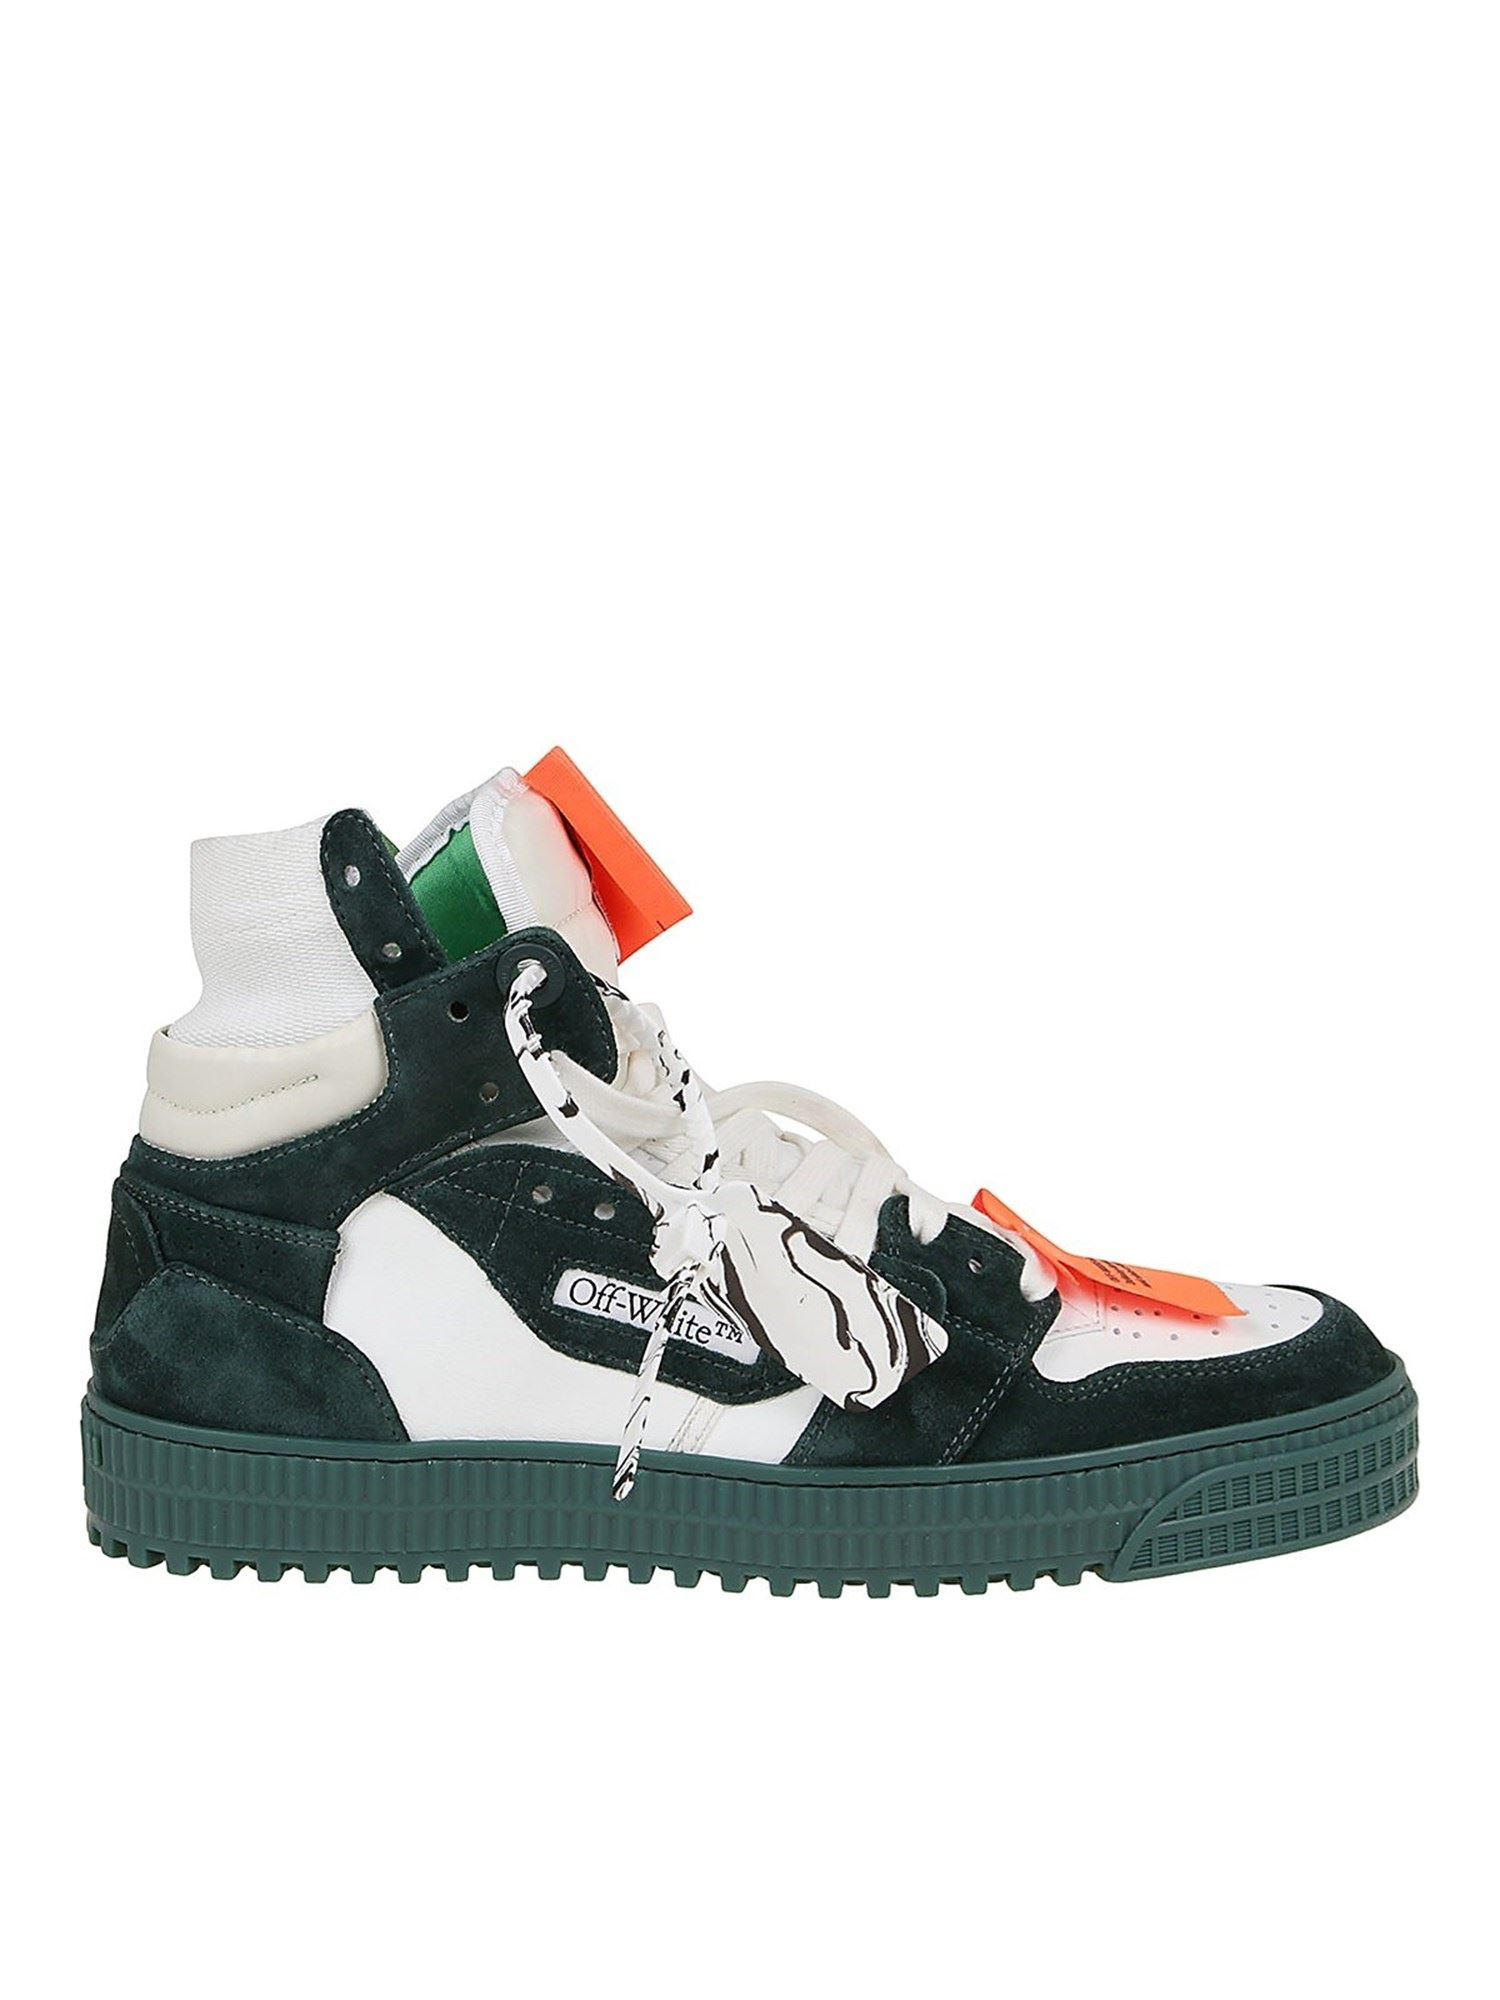 Off-White Suedes 3.0 OFF COURT SNEAKERS IN GREEN